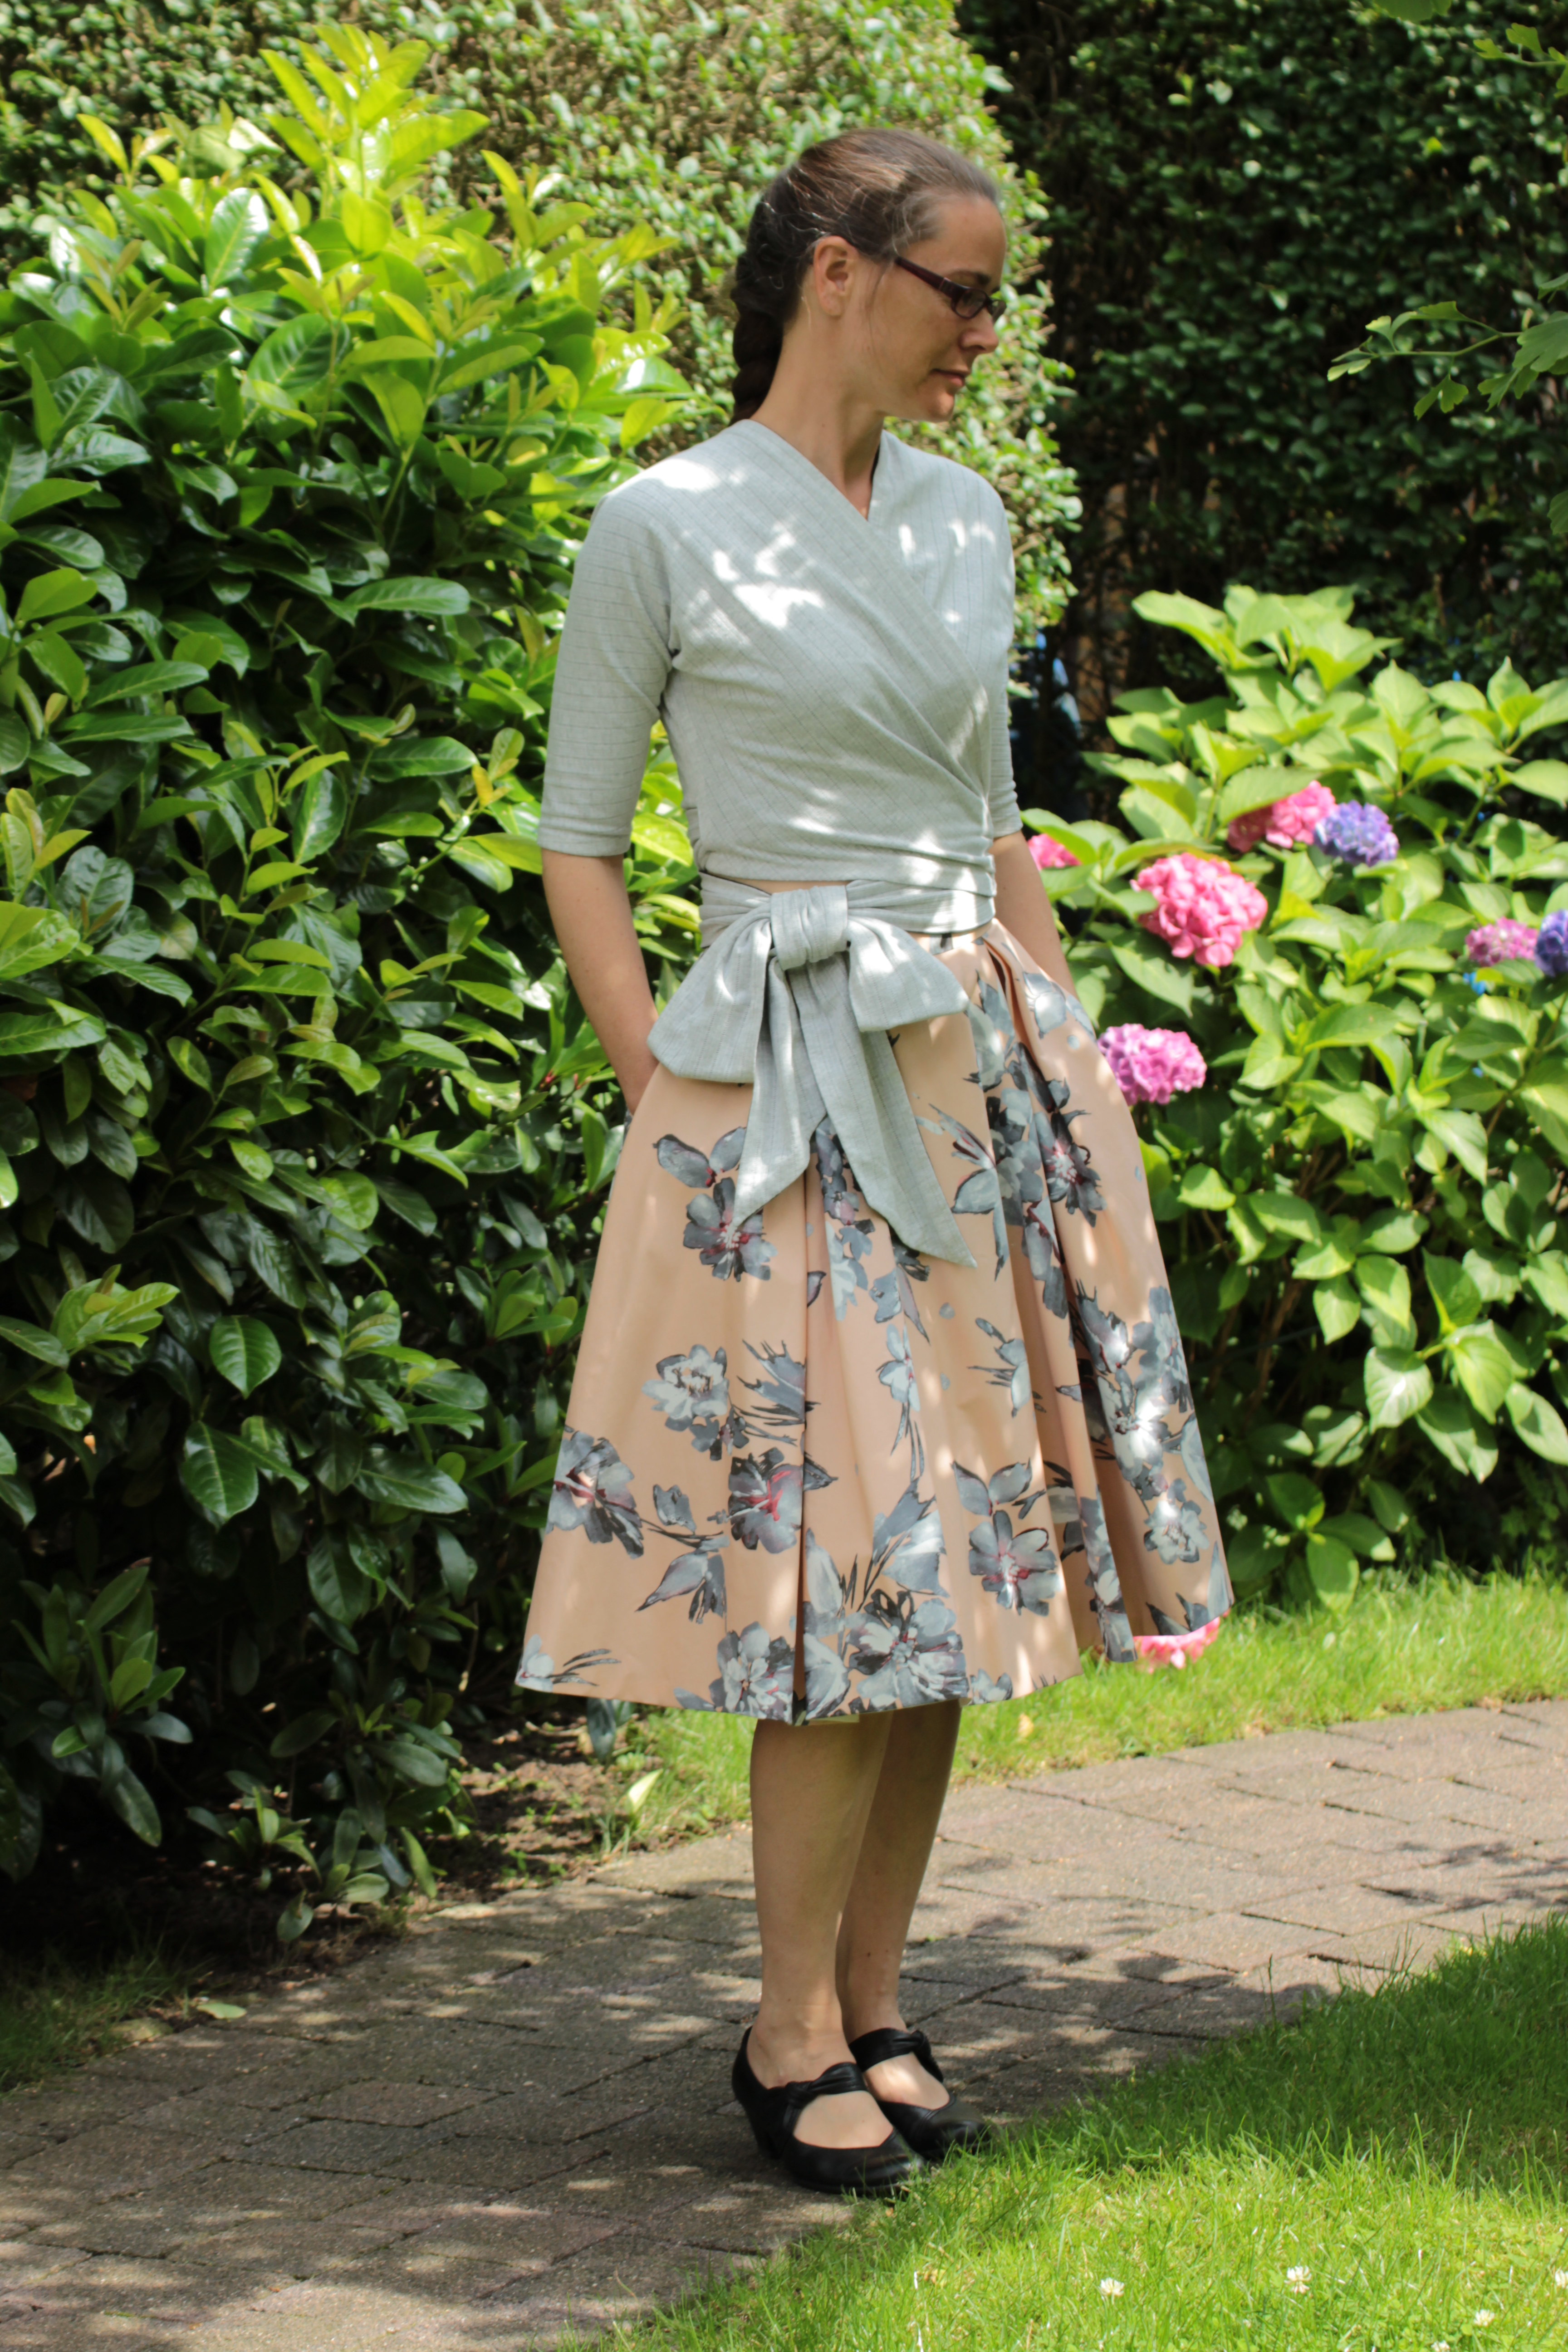 Butterick 6285 Top And Skirt Sewing Projects